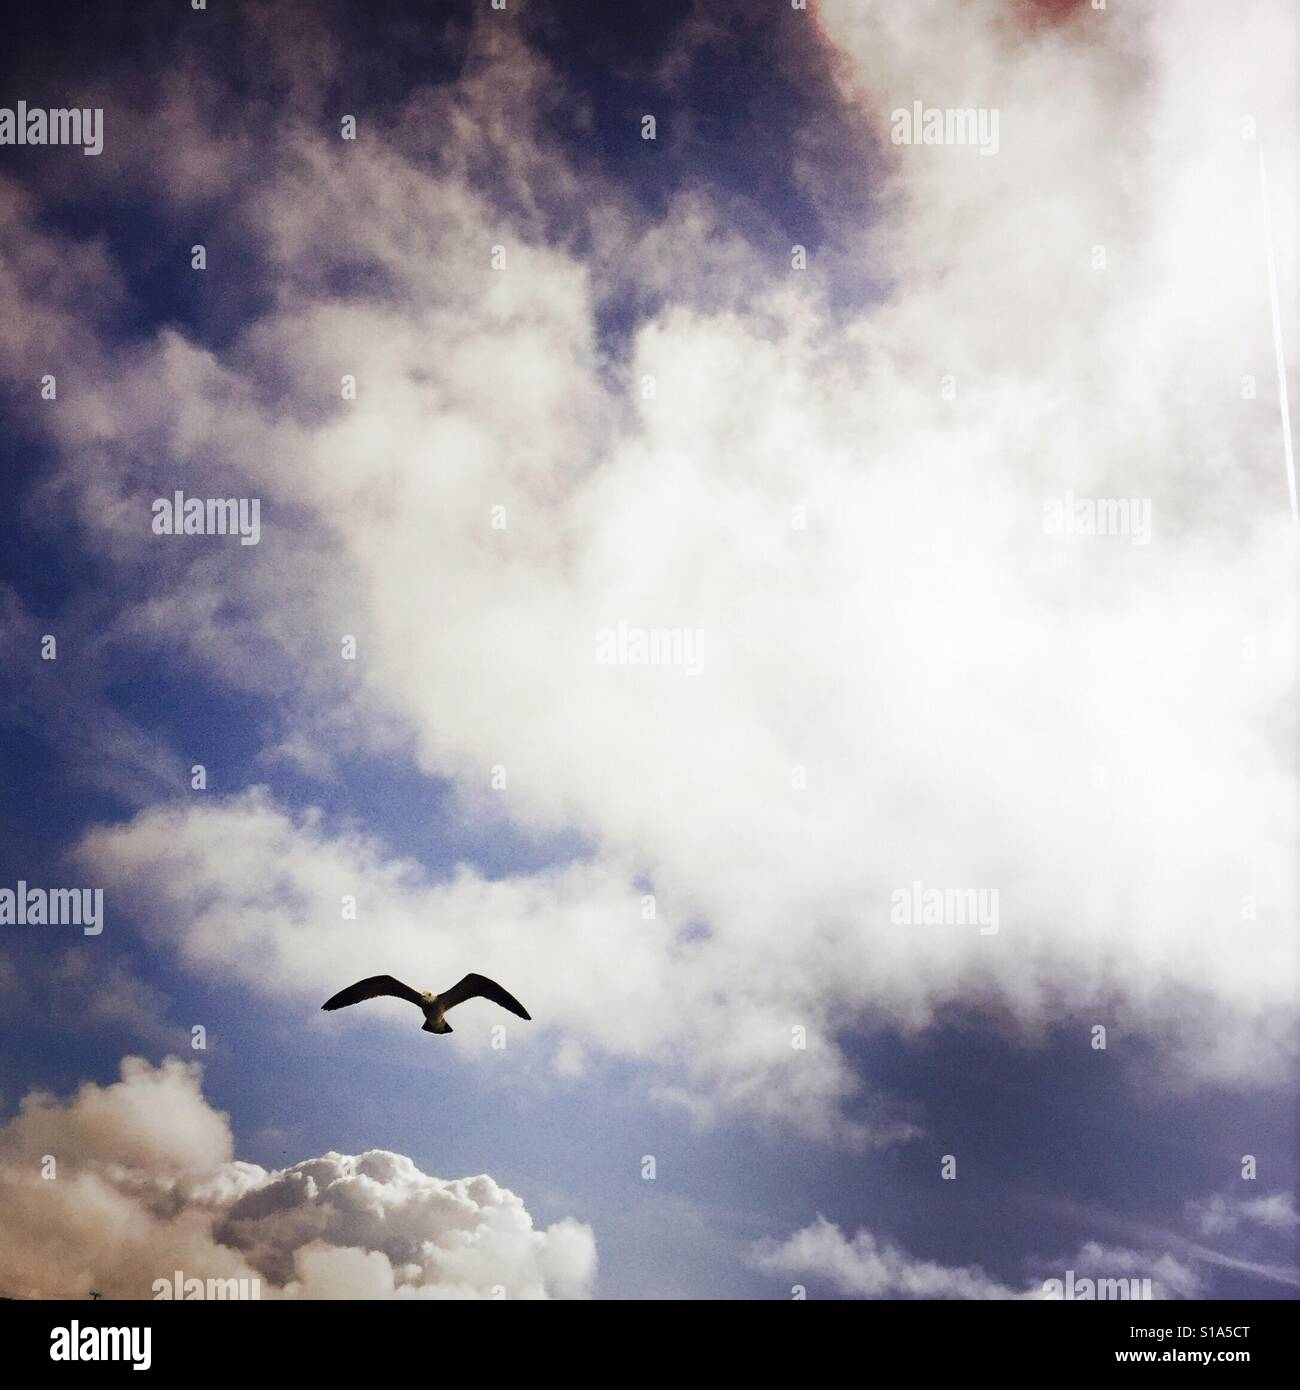 A seagull flying in the sky. - Stock Image